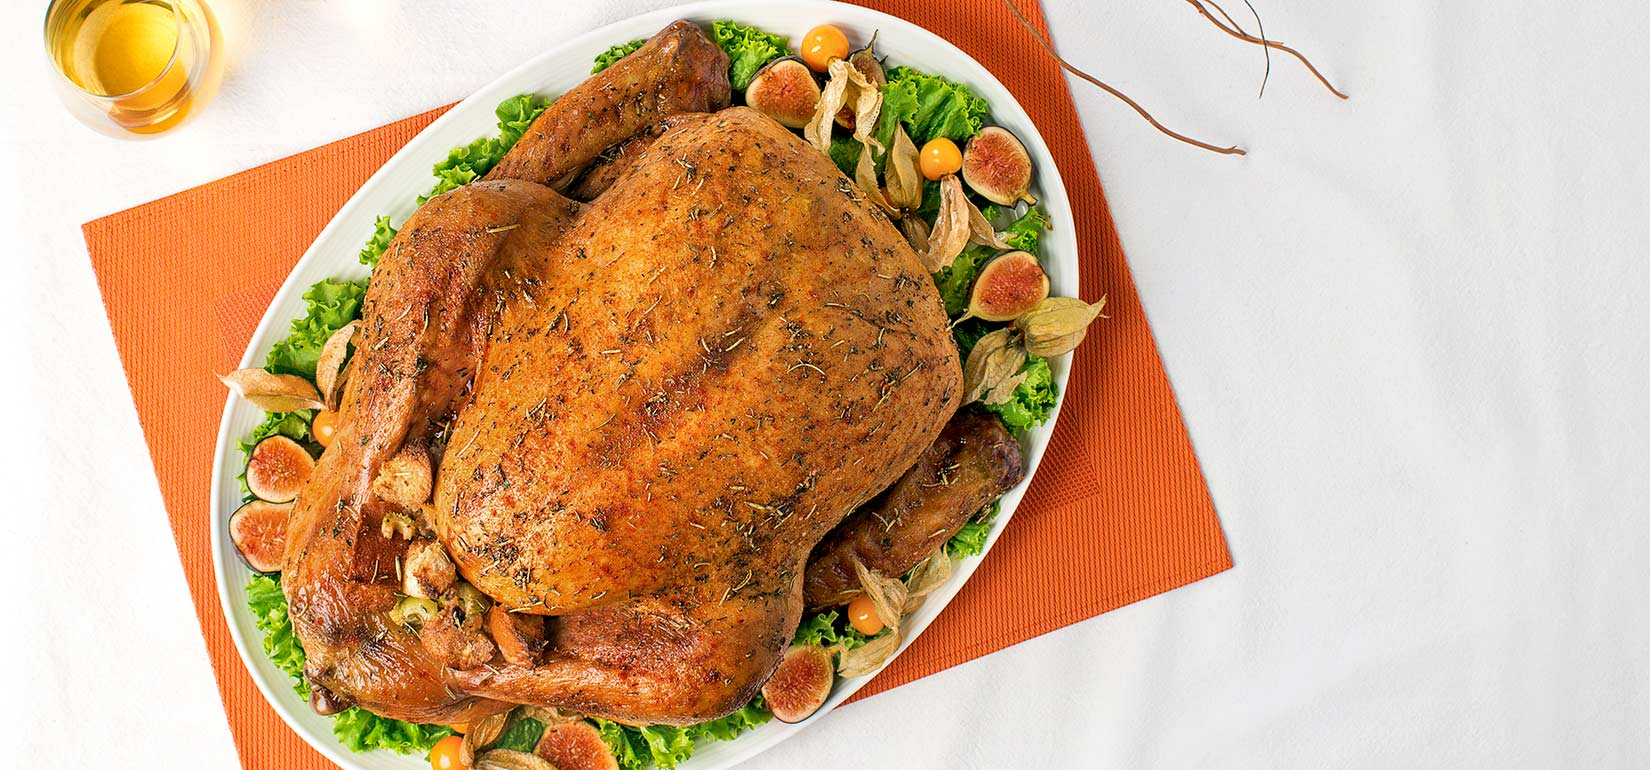 Simply Organic Holiday Organic Savory Spiced Turkey Rub Recipe